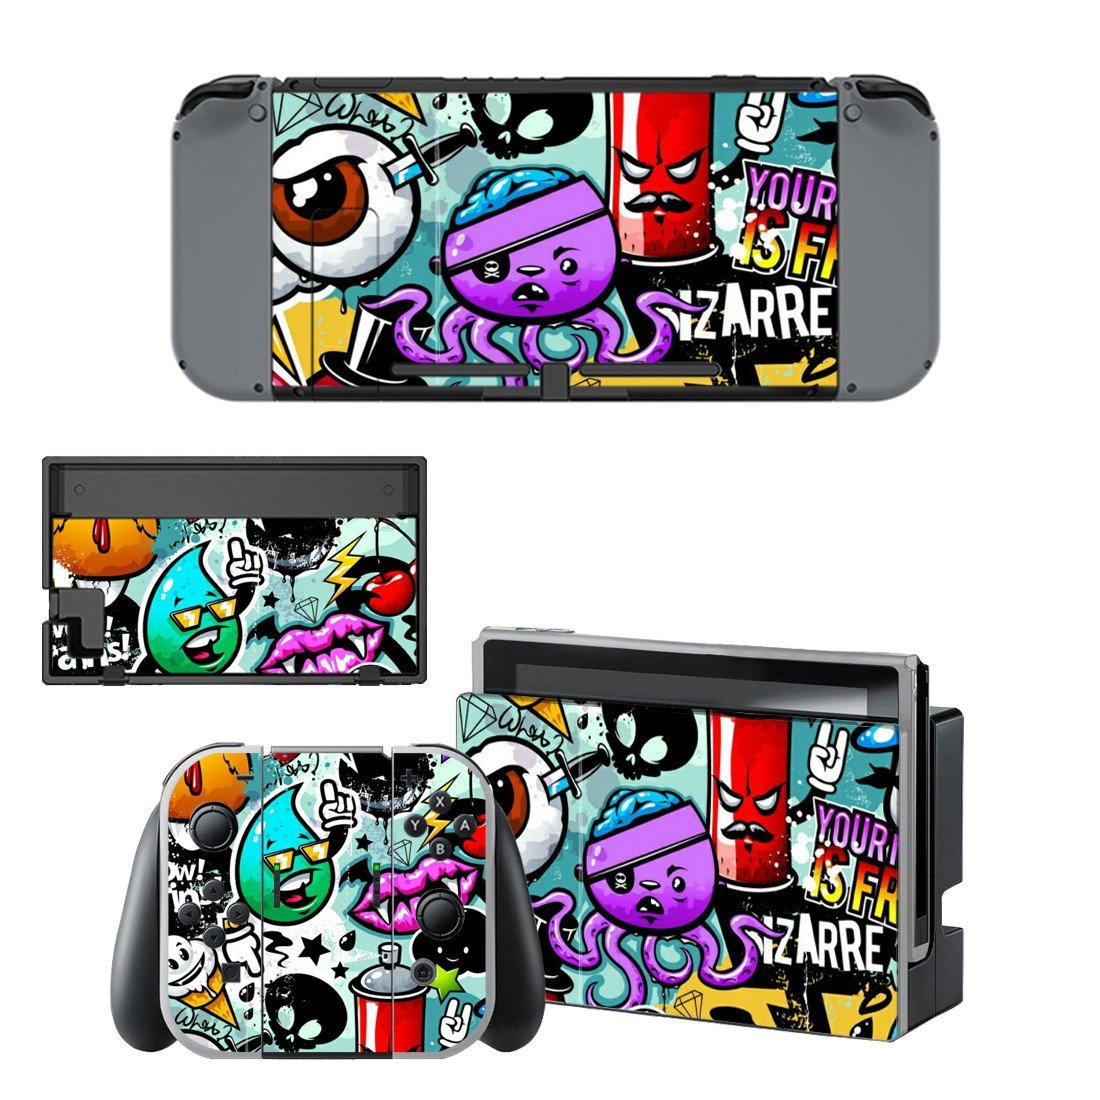 Animated octopus decal for Nintendo switch console sticker skin